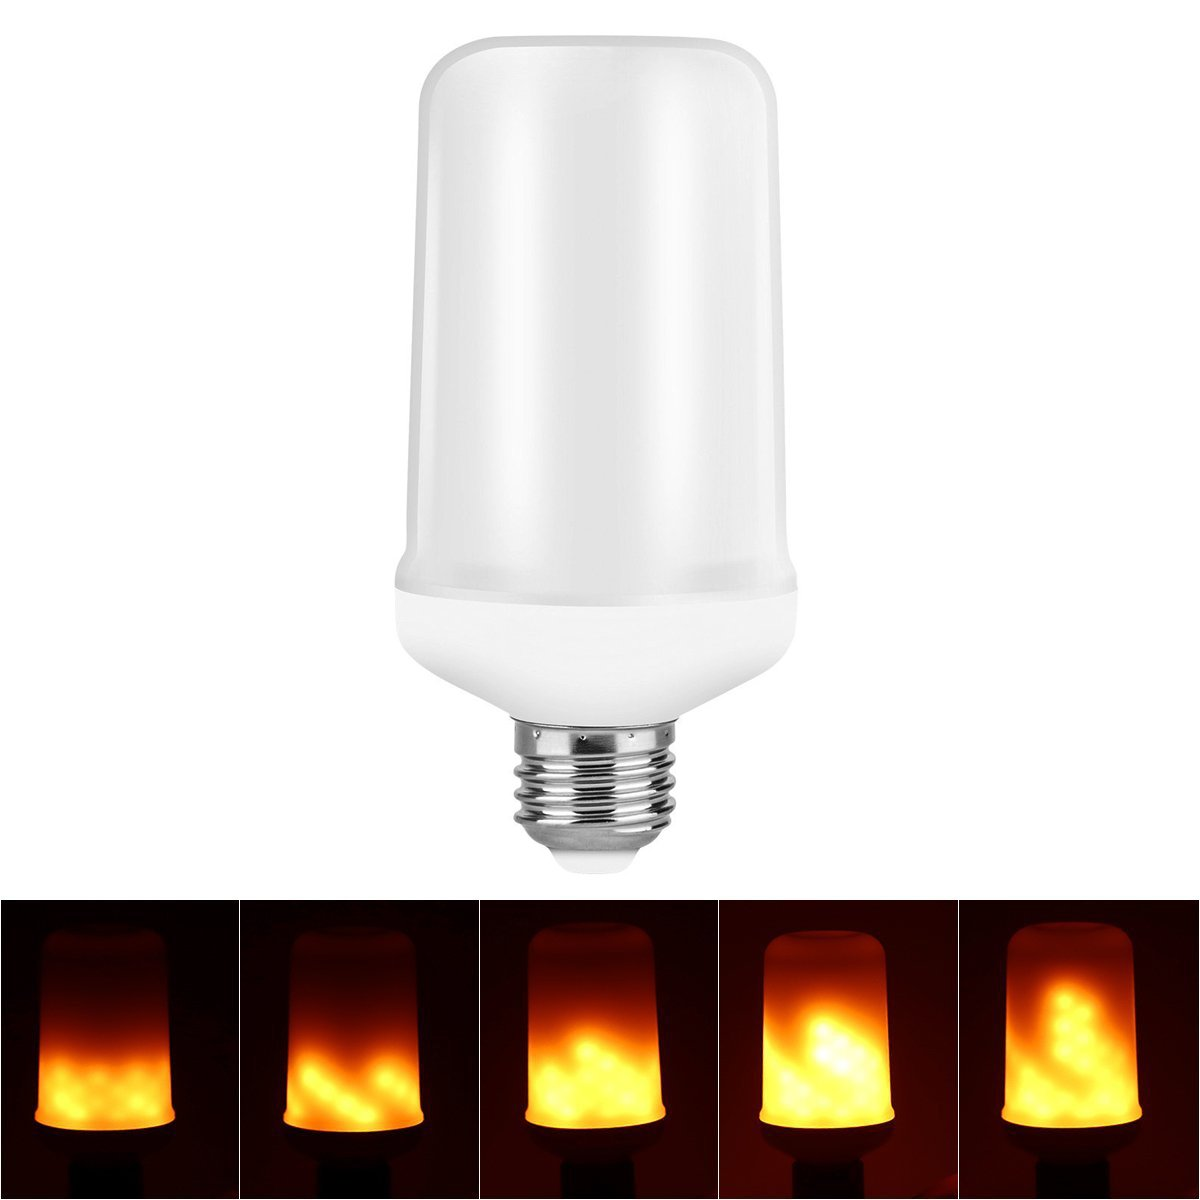 Jekewin Led Flame Effect Light Bulb Flickering Flame Lamp Simulated Vintage LED Lamp for Home and Hotel Decorative with E26 Standard Base